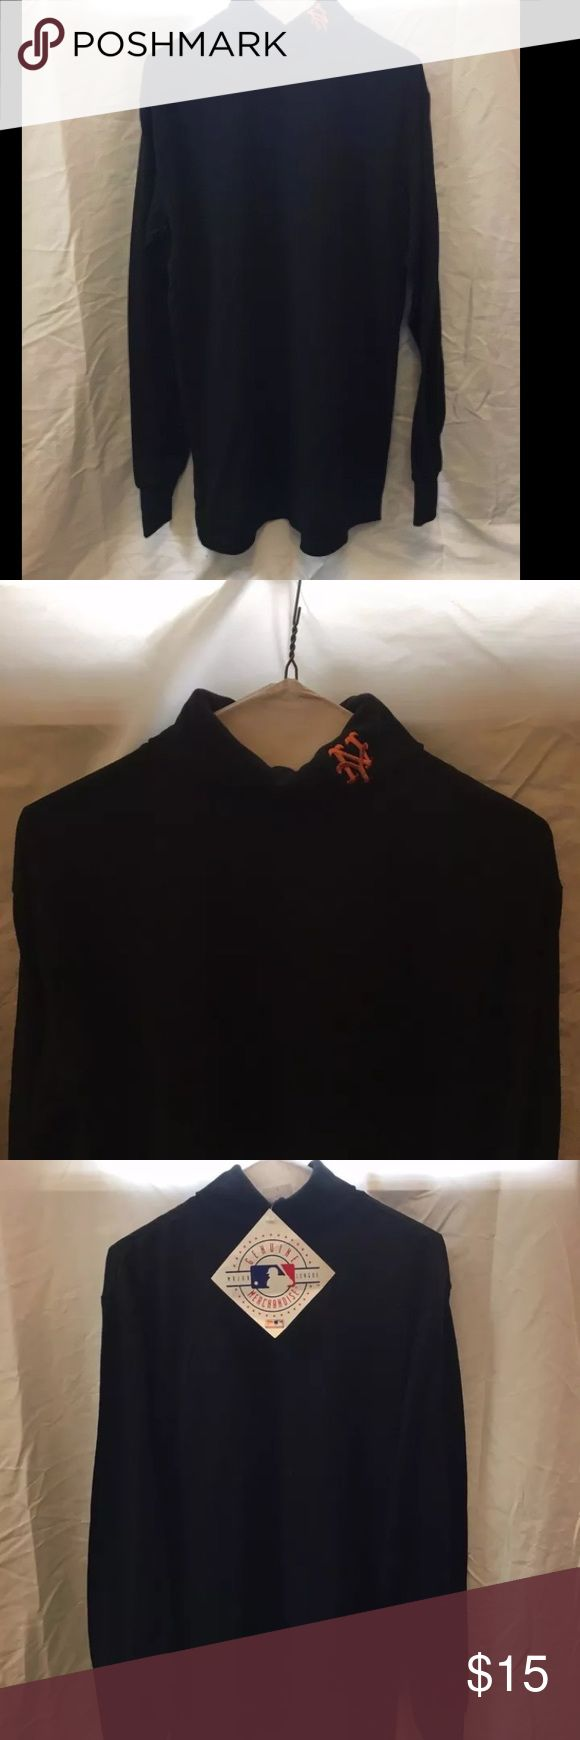 New York Mets Mens Turtleneck This item is new, never been worn and still has the original tag on it. It is a size large. The New York Mets logo is on the actual turtle neck part. Majestic Shirts Tees - Long Sleeve